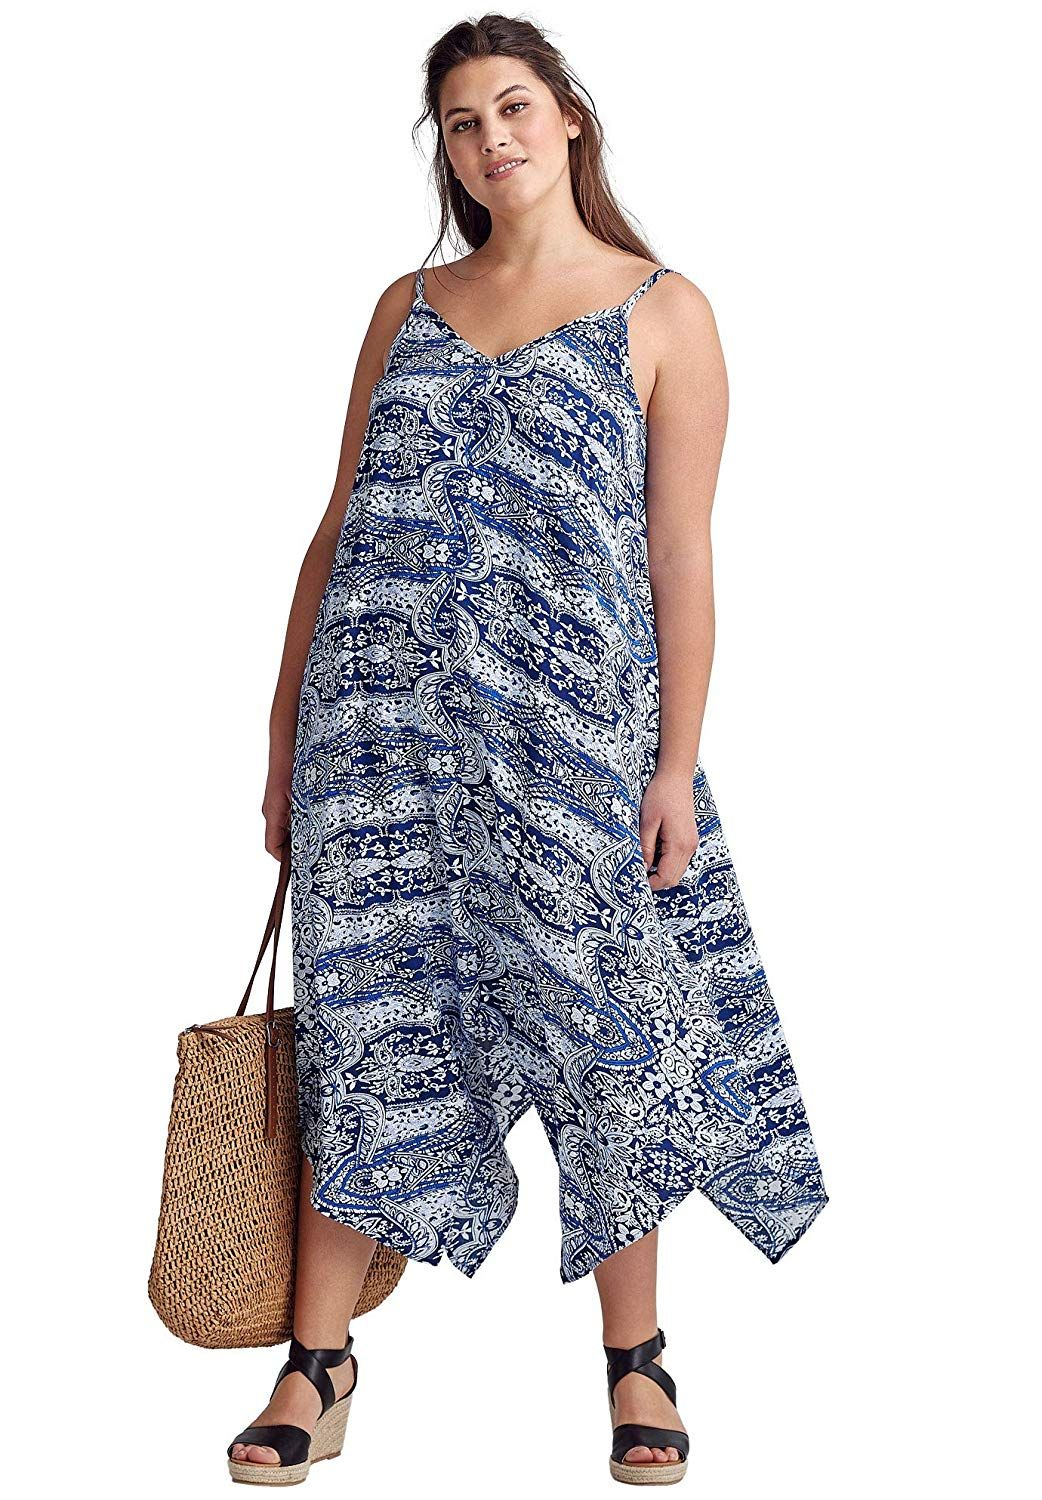 ellos women's plus size printed hanky hem dress at amazon